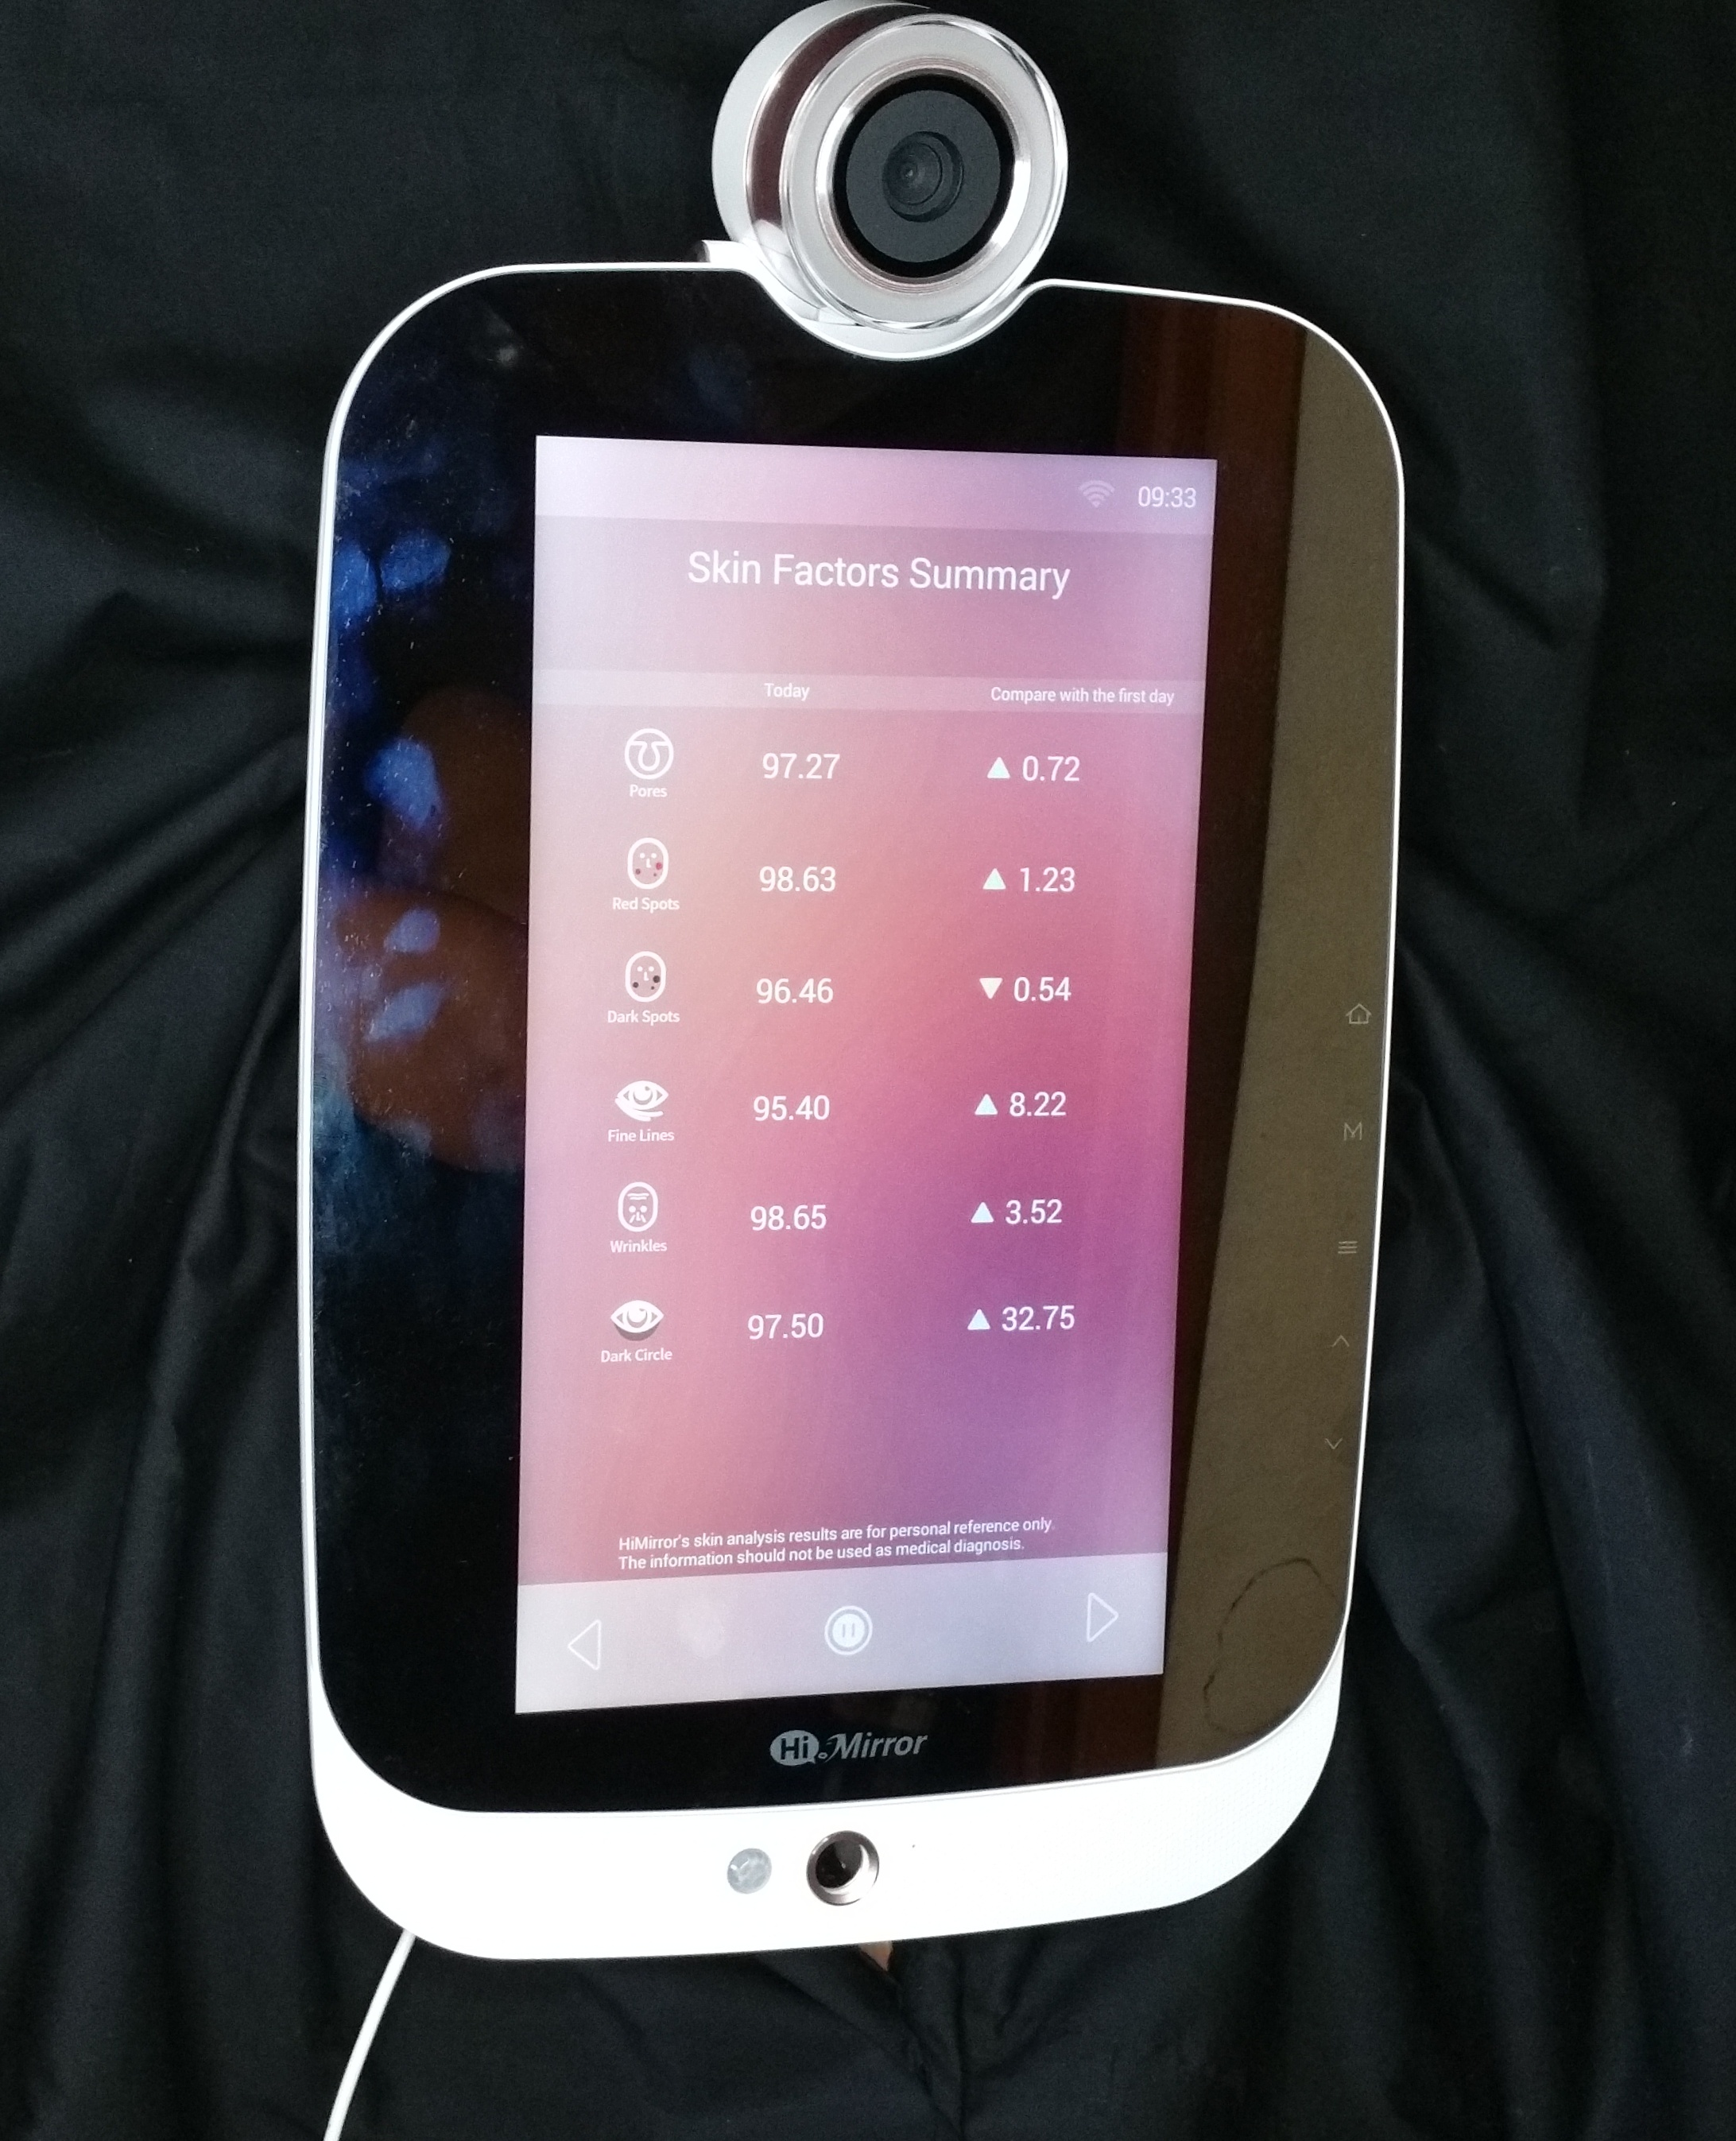 himirror, technology, beauty, mirror, skin analyzer, skin technology, technology, skin care, beauty tech, tech, review, demo,